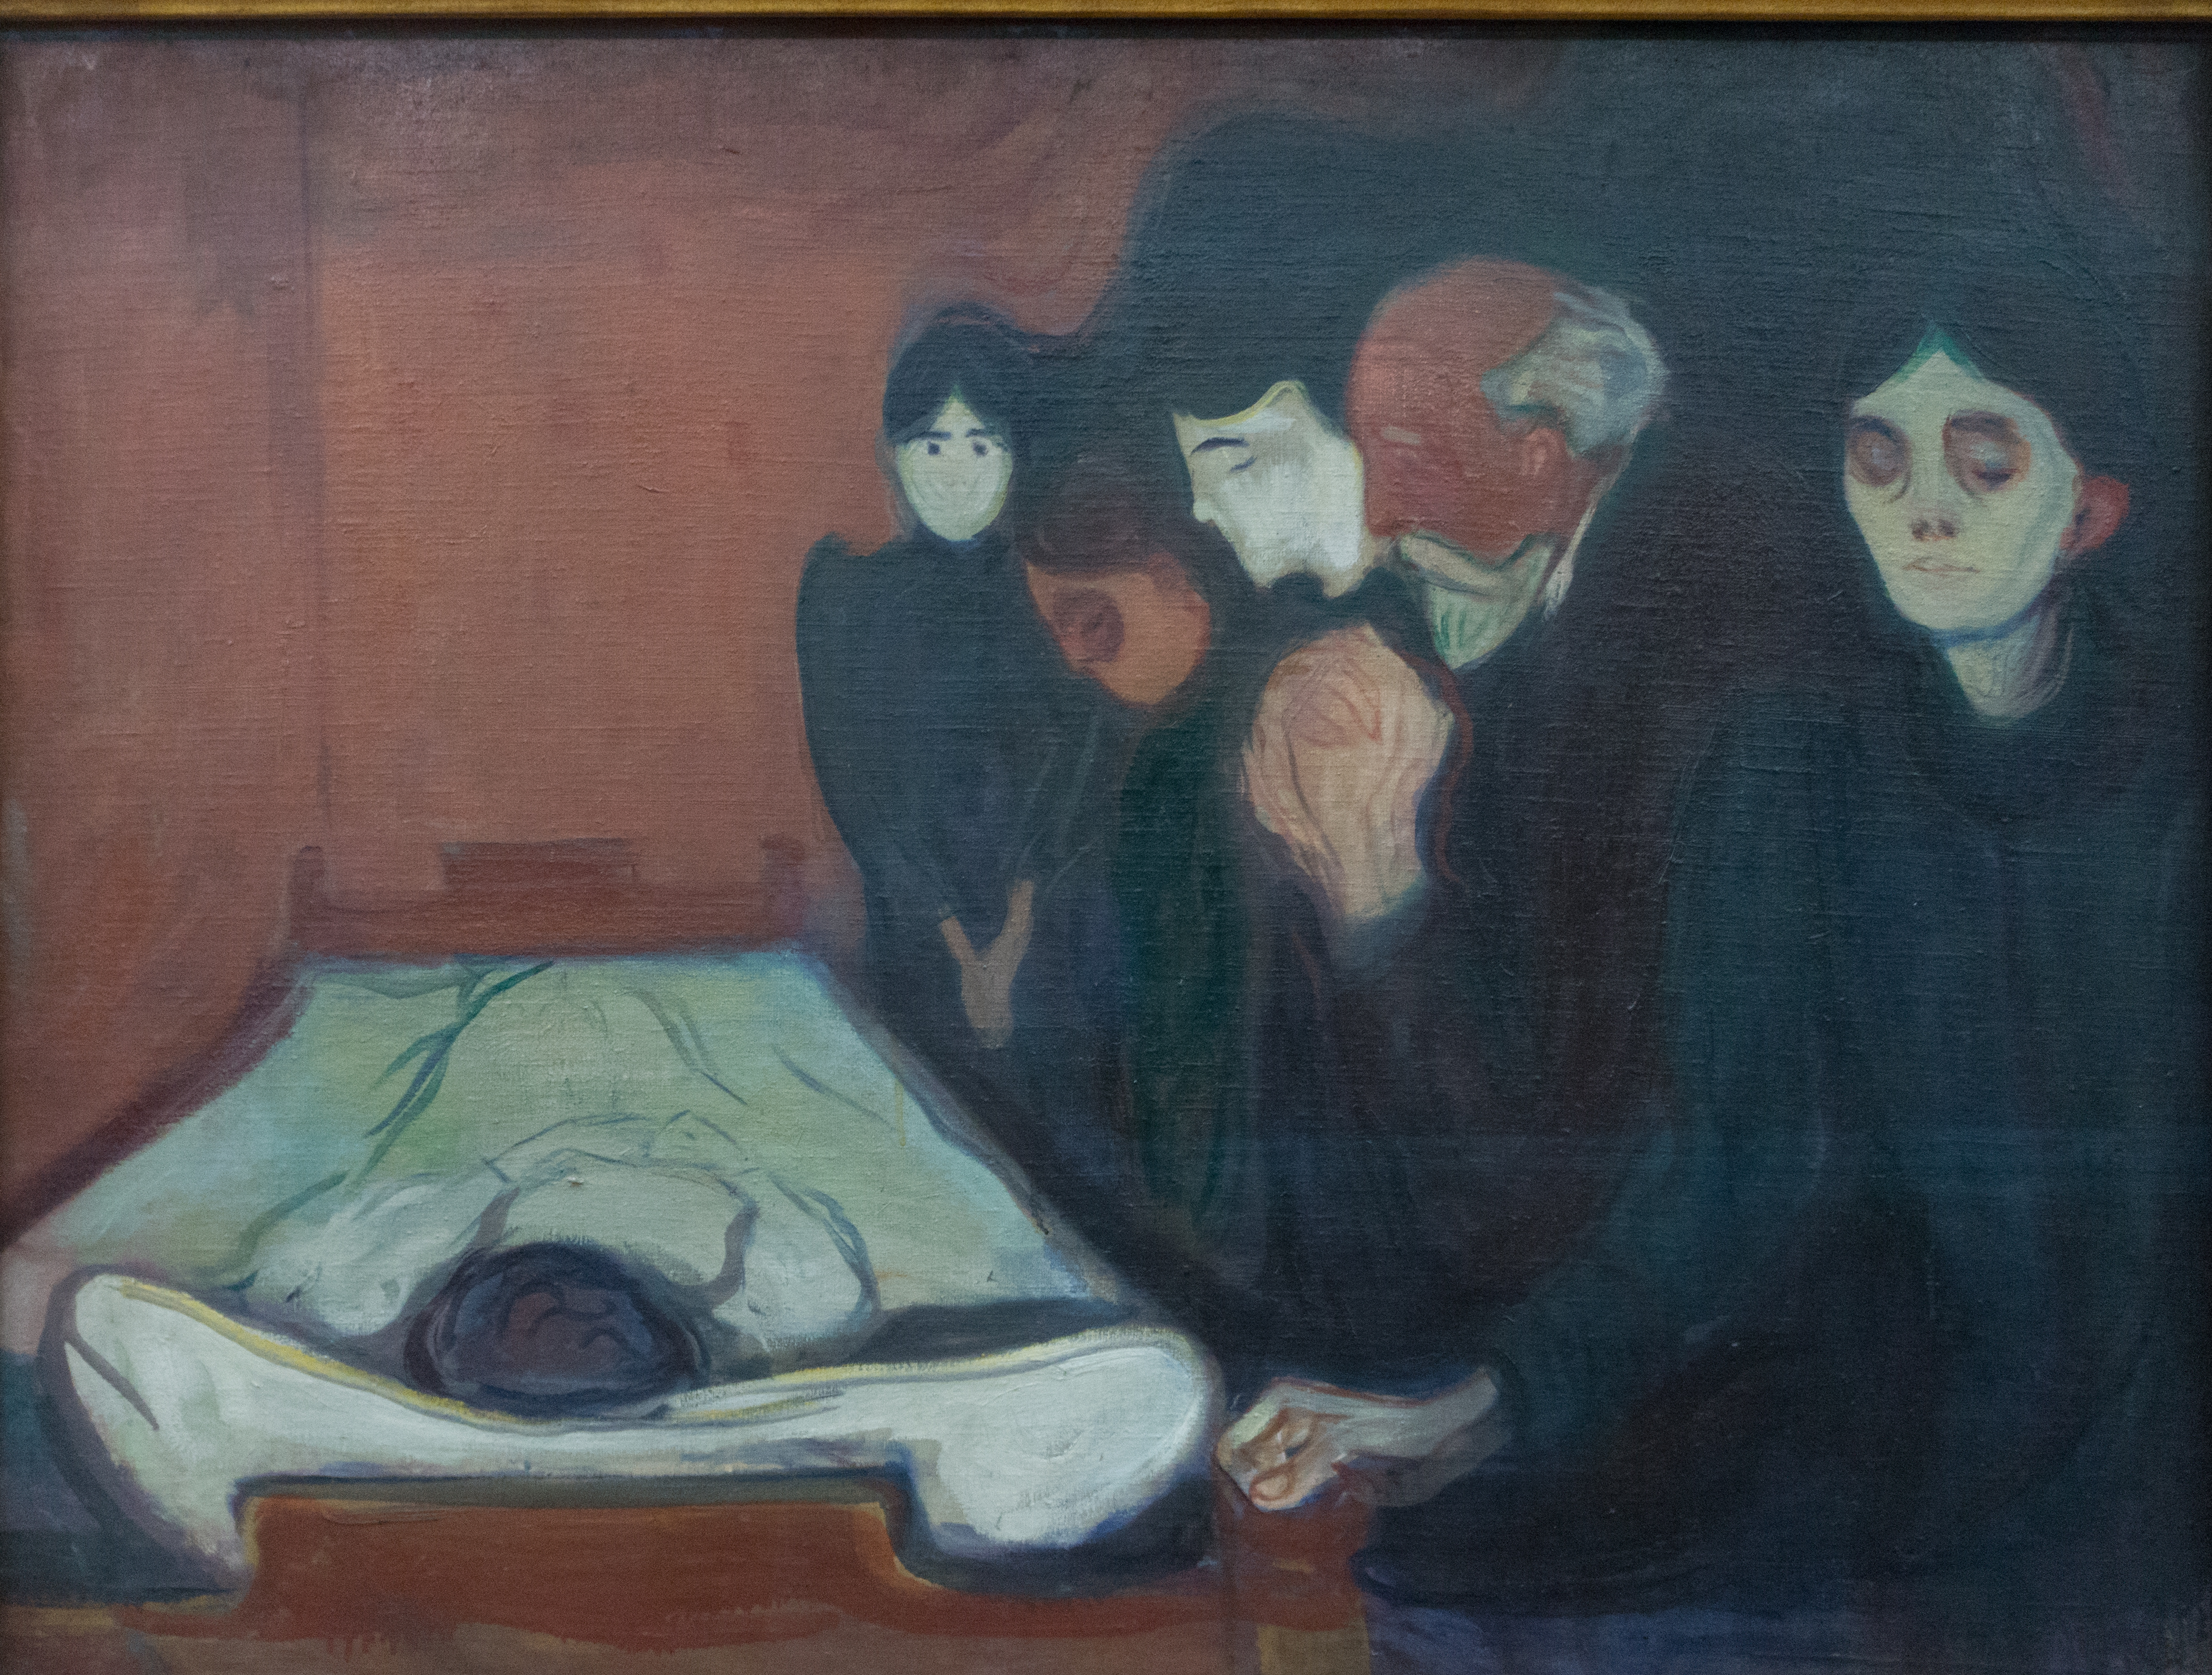 Edvard Munch, At the Deathbed, 1895, oil/tempera on canvas.